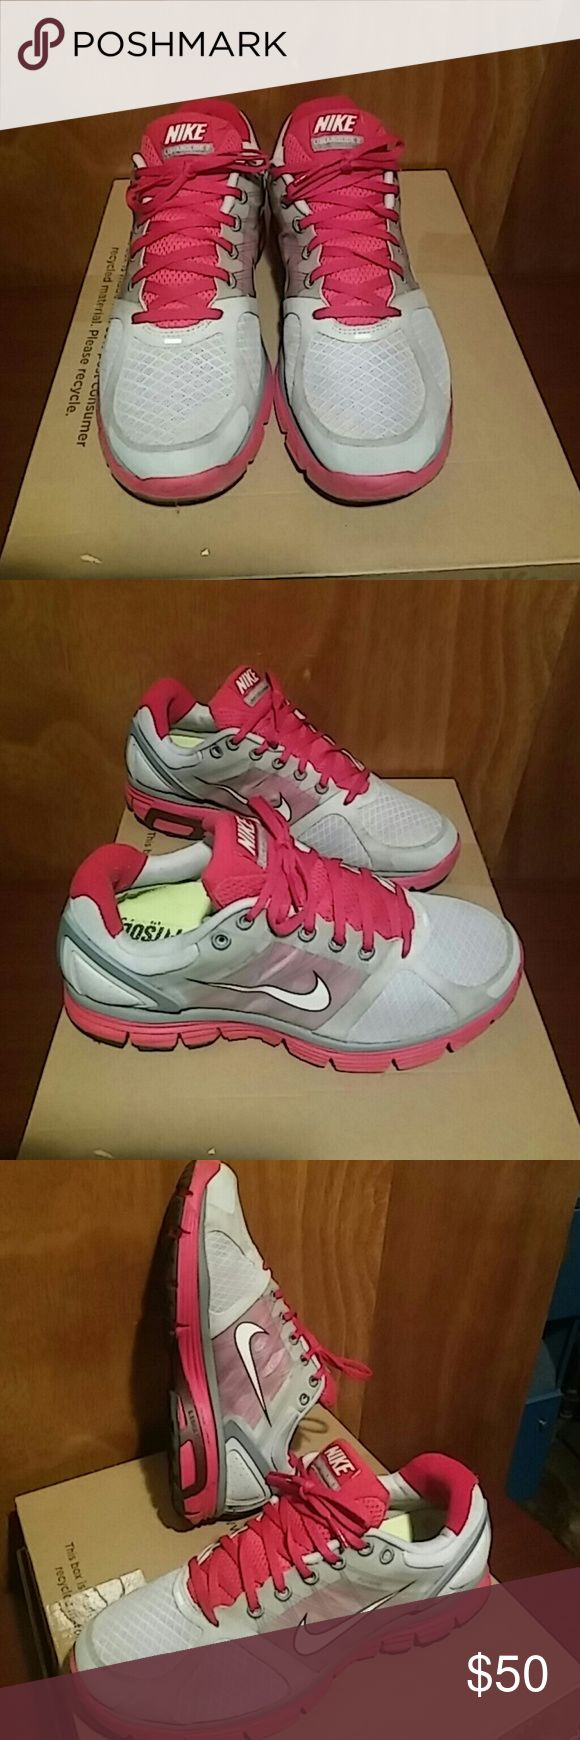 NIKE LUNAR GLIDE 2 Pre owned, clean and well kept sneakers. Women Size 9 US. Only worn a couple of times. Small scuff on right sneaker near inner heel as seen on pic #5. Fuschia and grey with reflectors on back heels and top near shoestrings. Nike Shoes Athletic Shoes